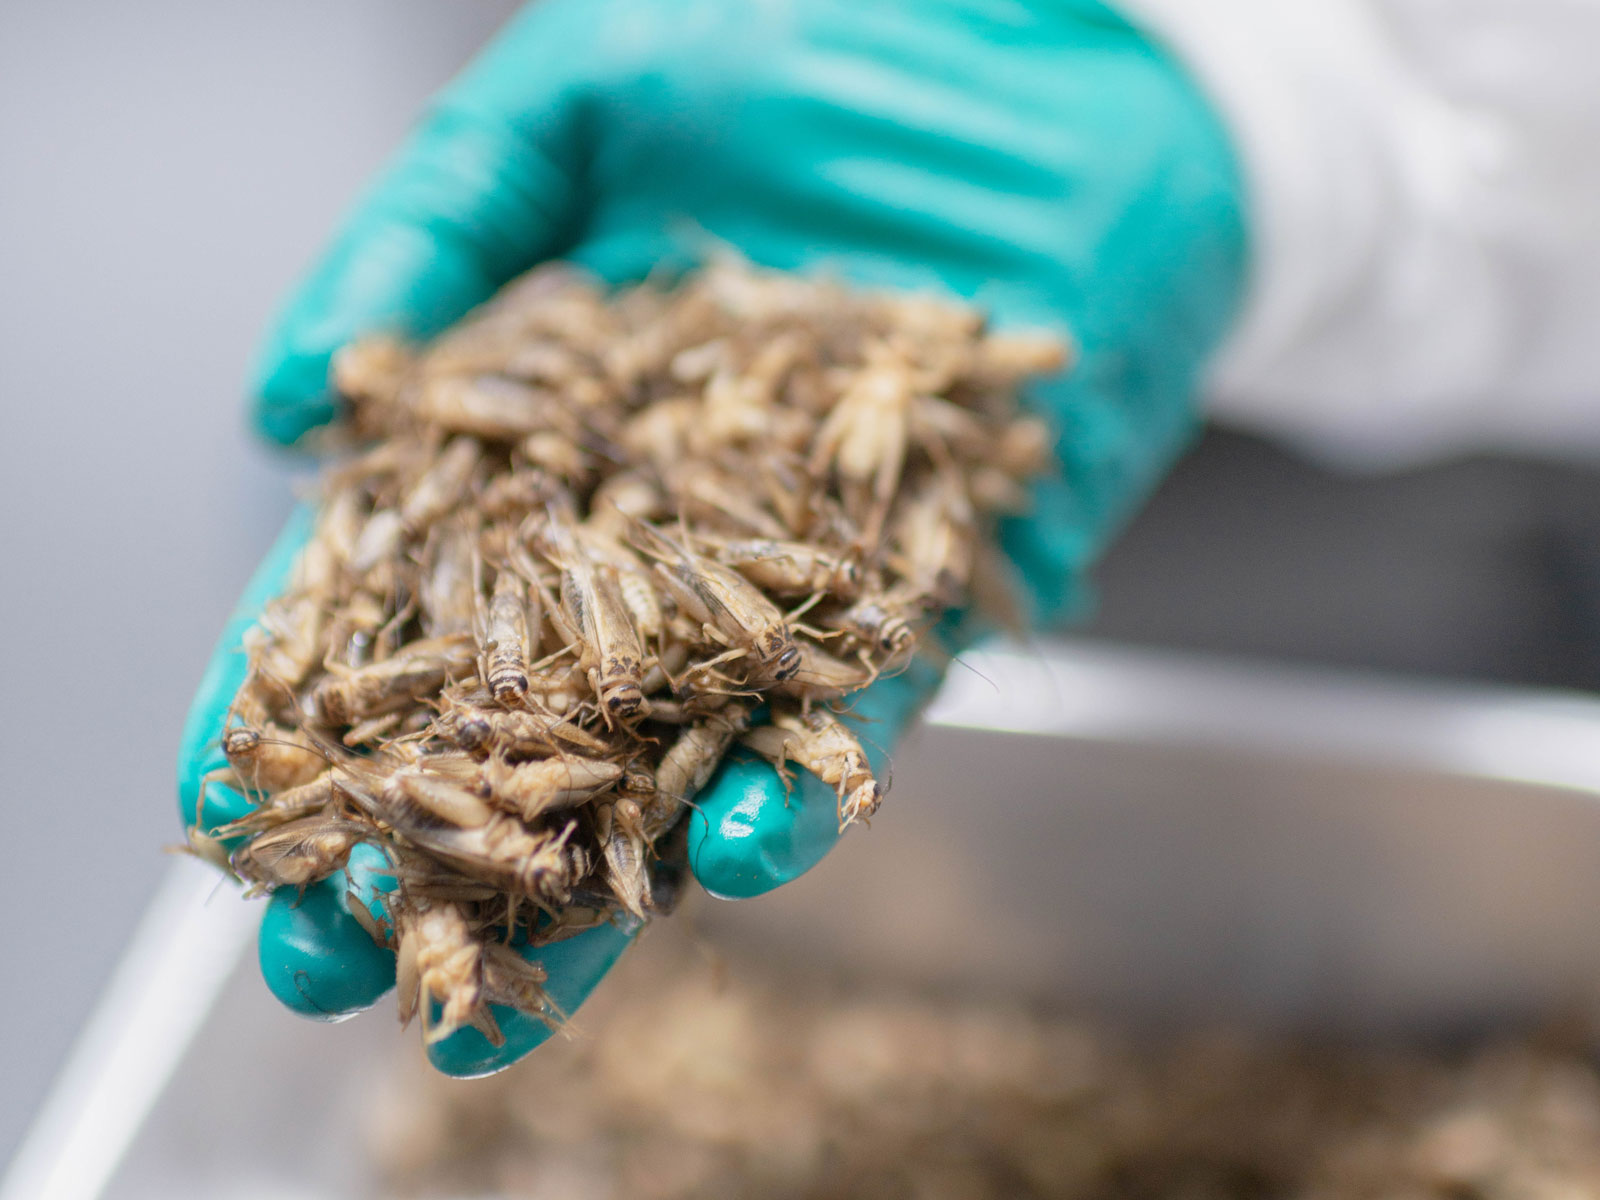 insect-farming-questions-FT-BLOG0119.jpg